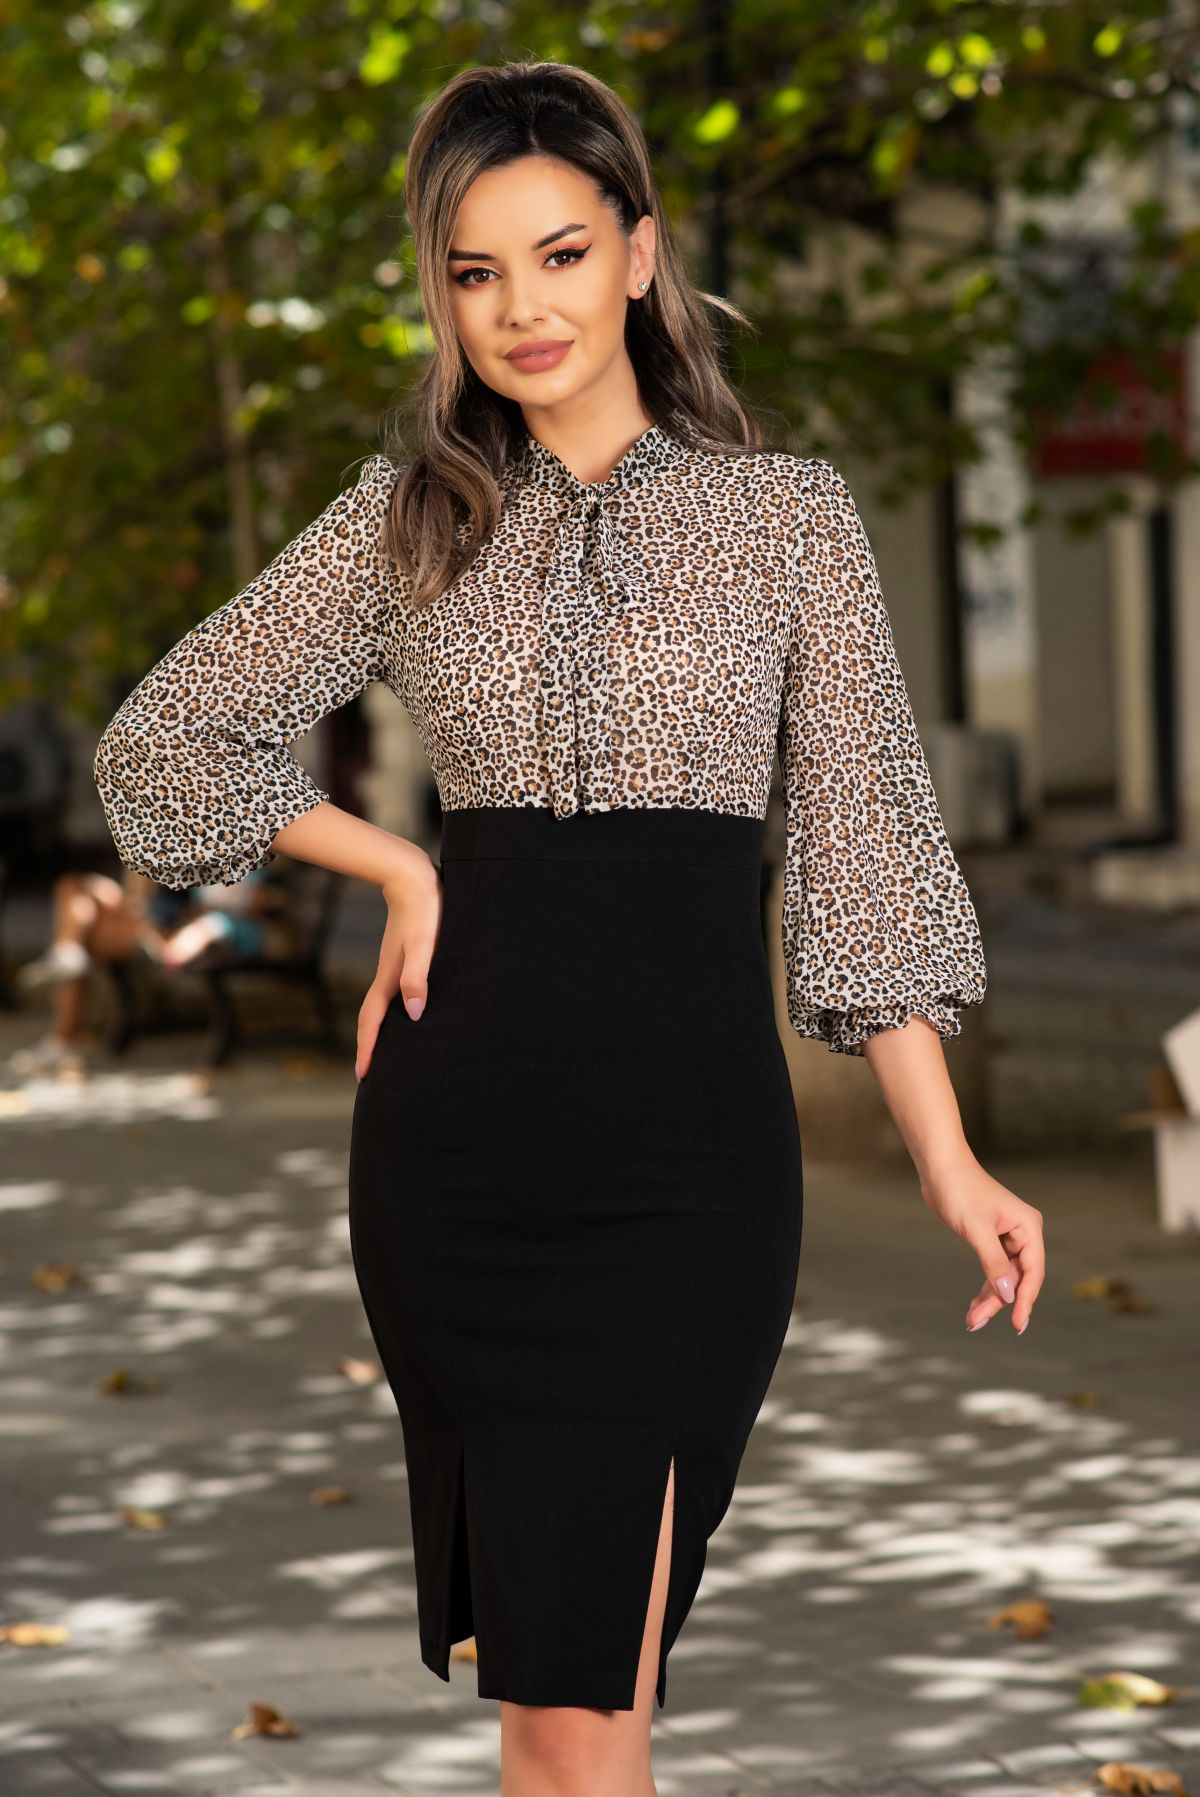 Rochie MBG office neagra cu animal print si guler tip esarfa MBG-Collection